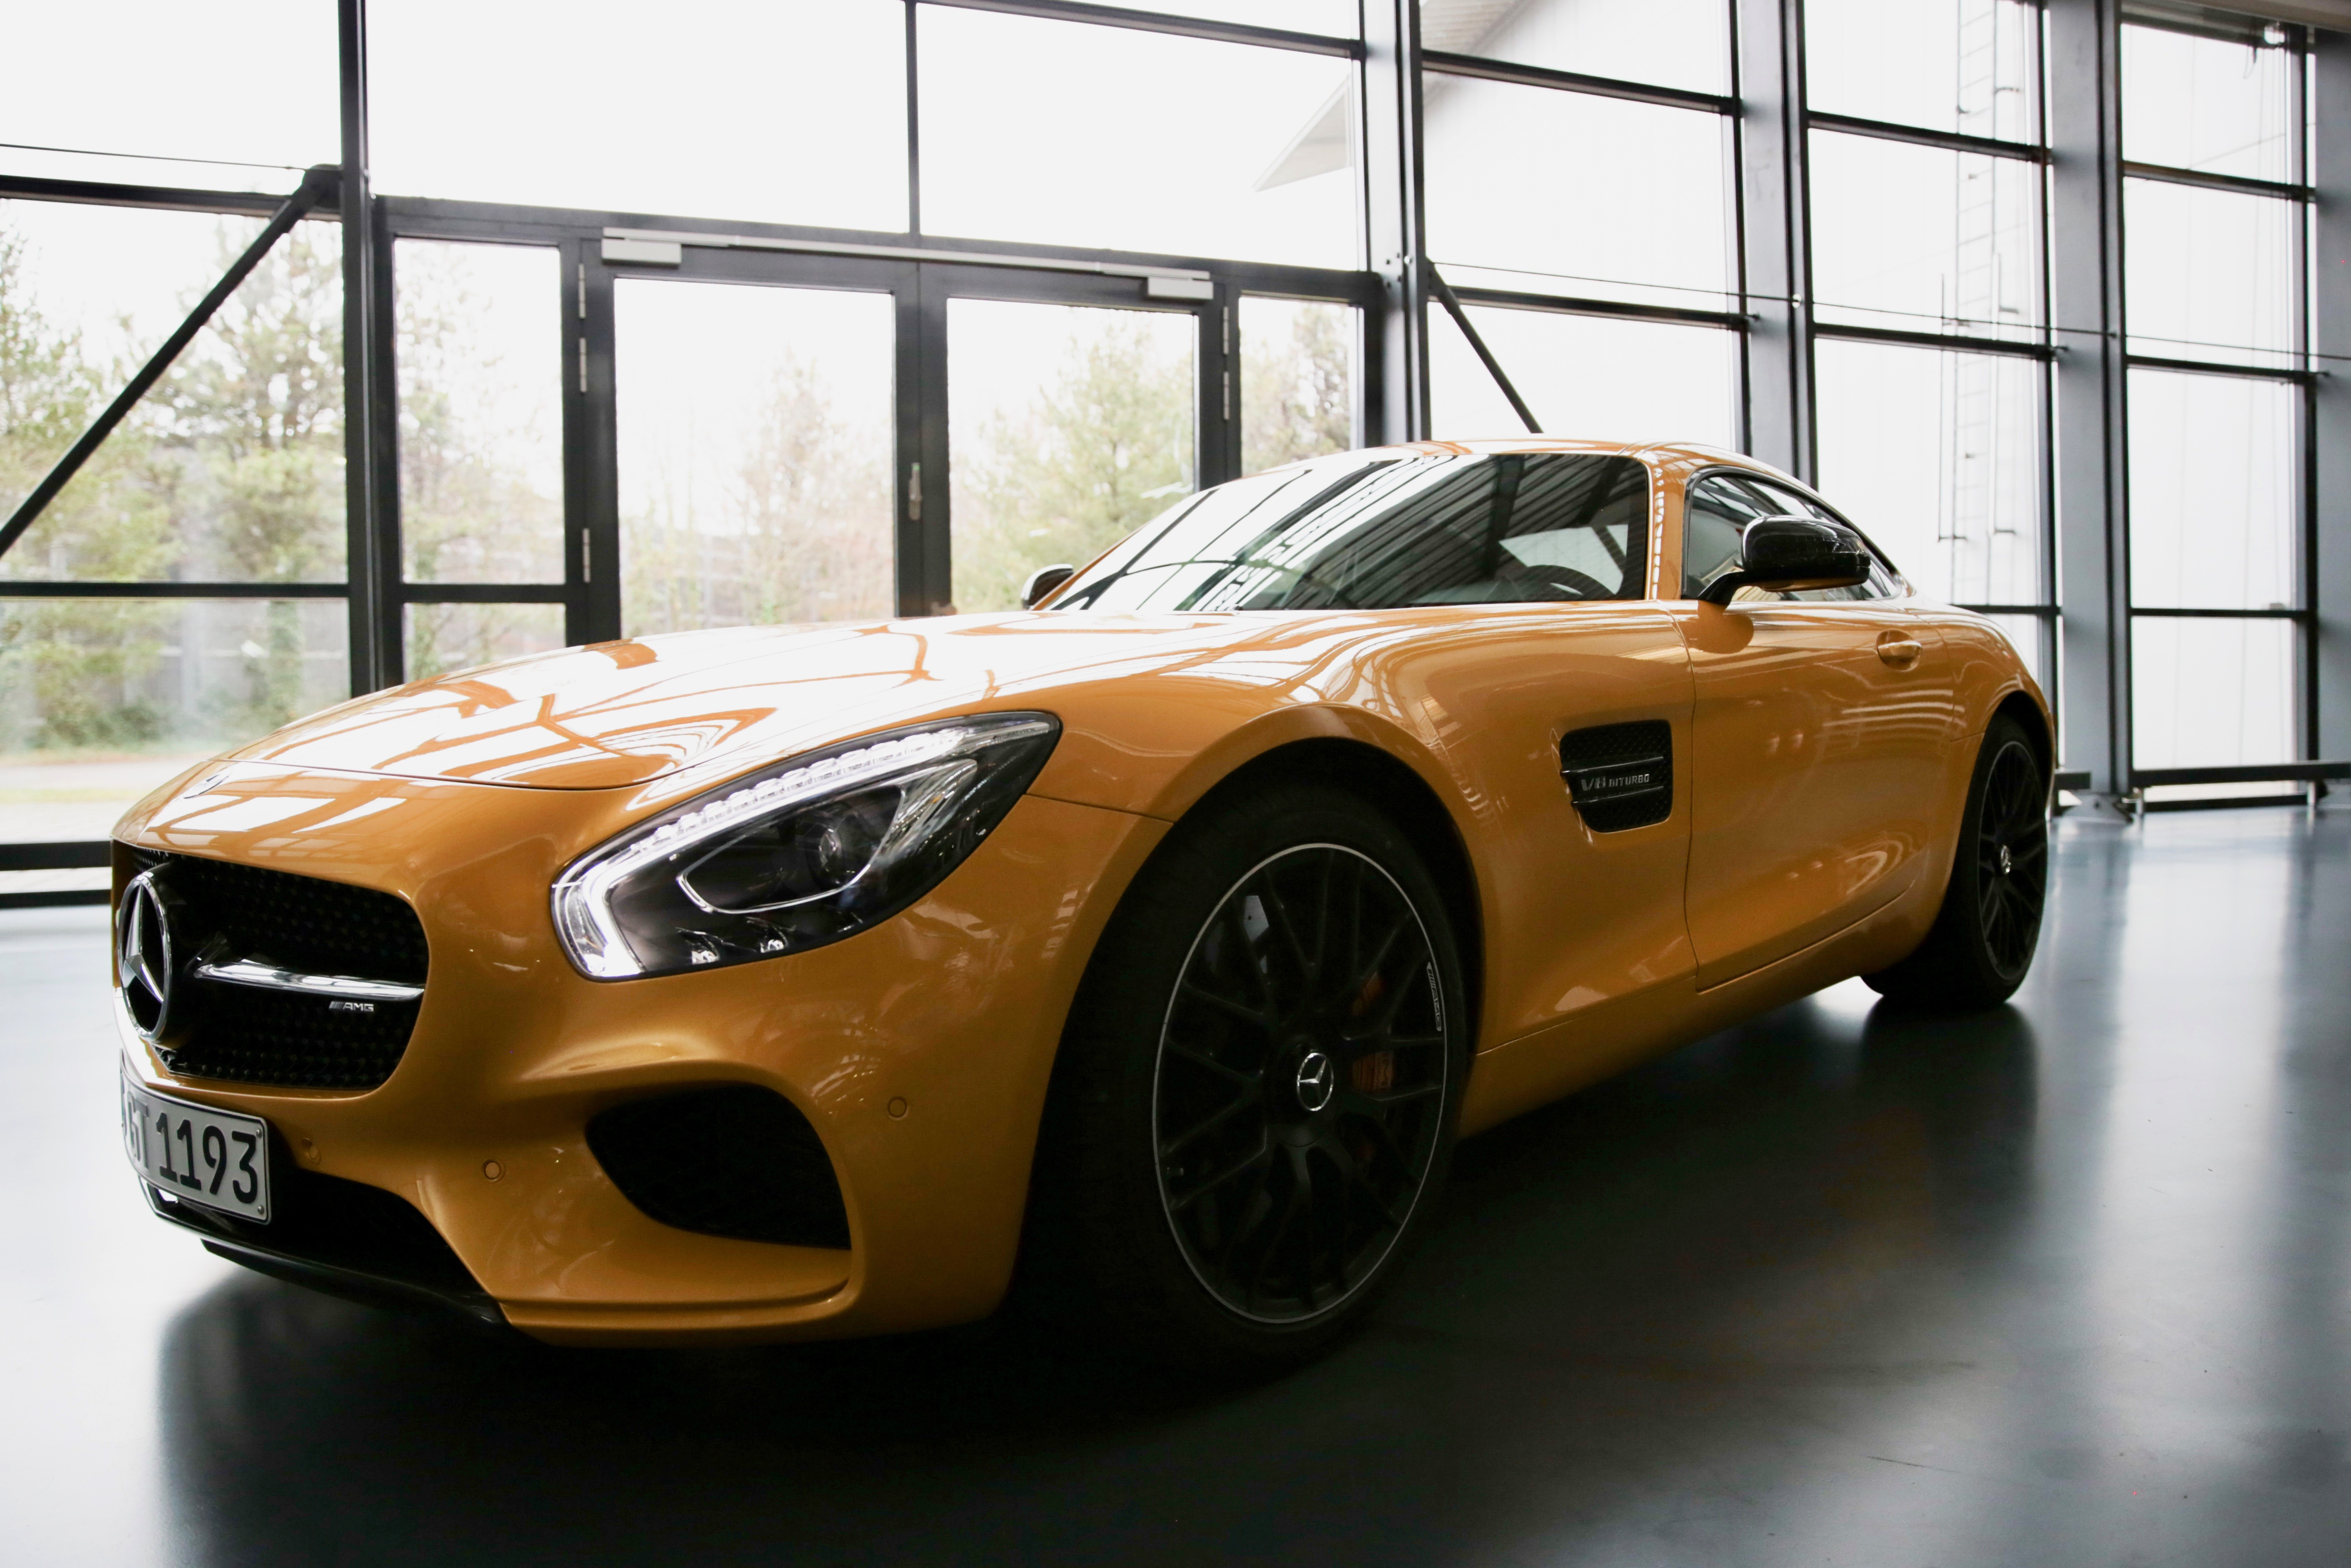 Smithsonian Channel, Smithsonian Channel examines how supercars are built, ClassicCars.com Journal